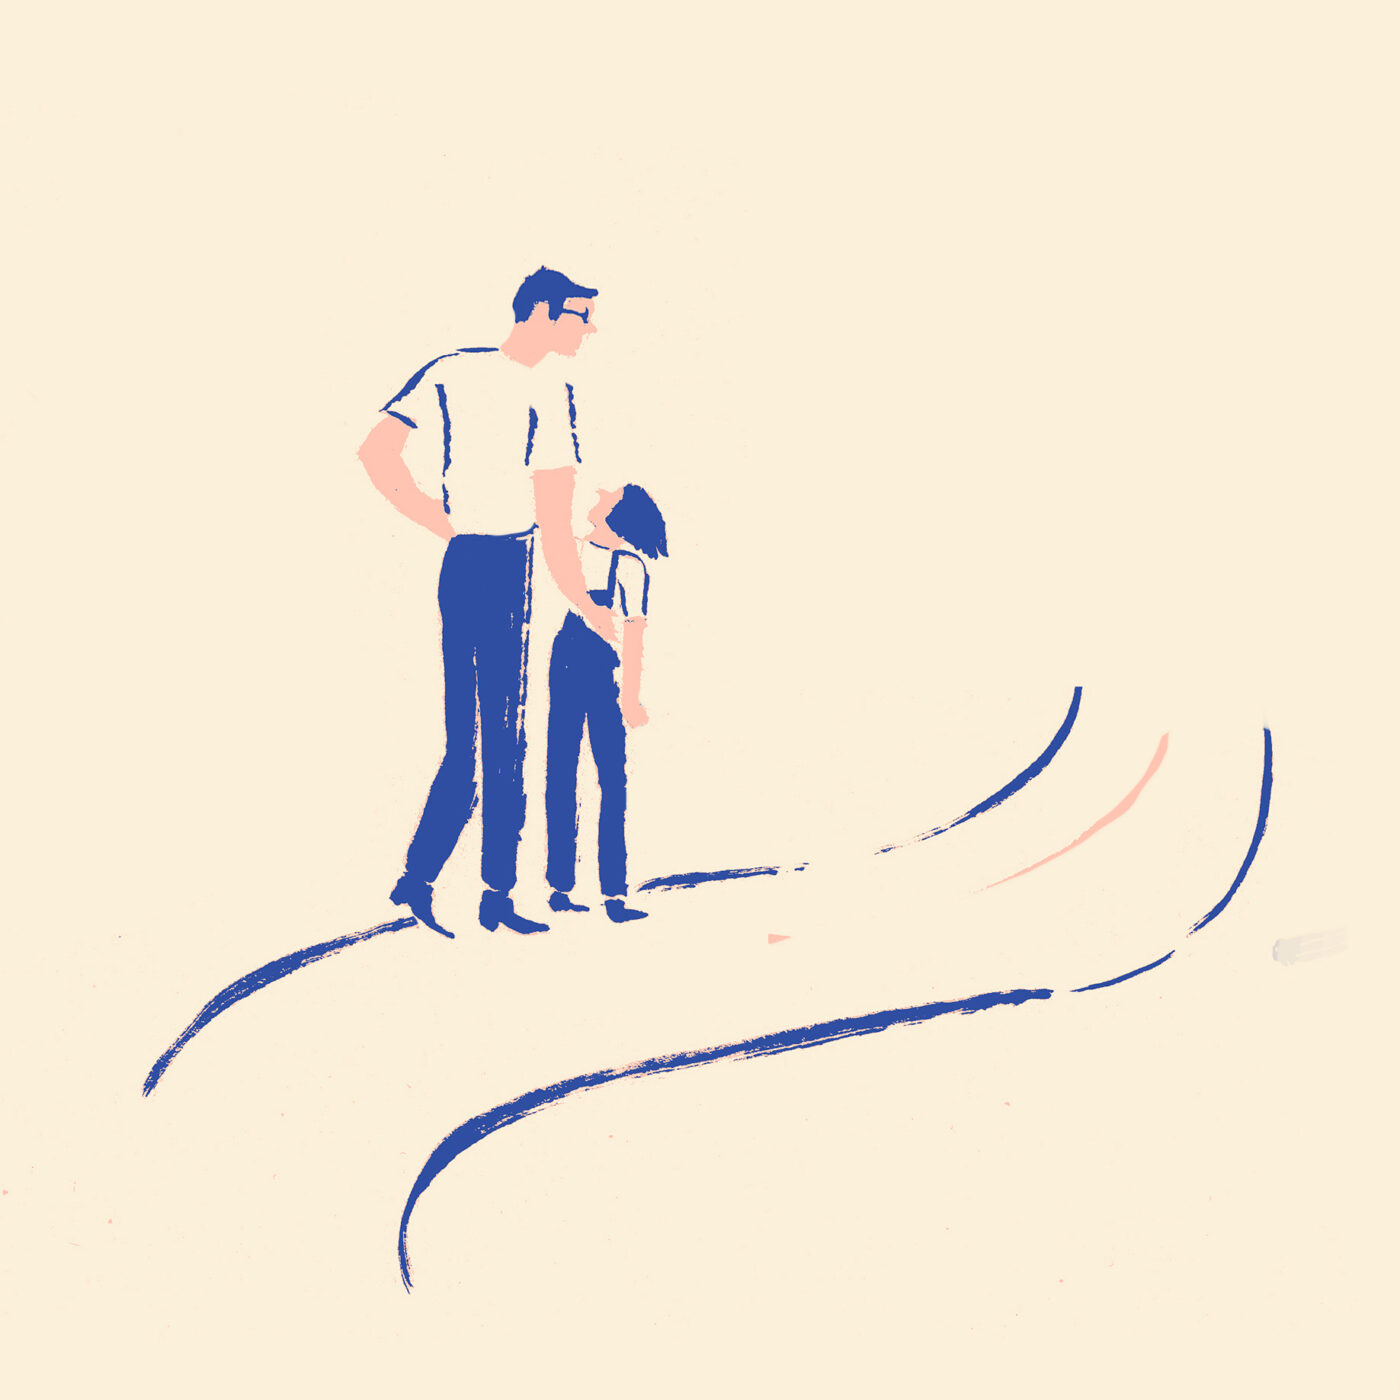 illustration of a man walking with a child